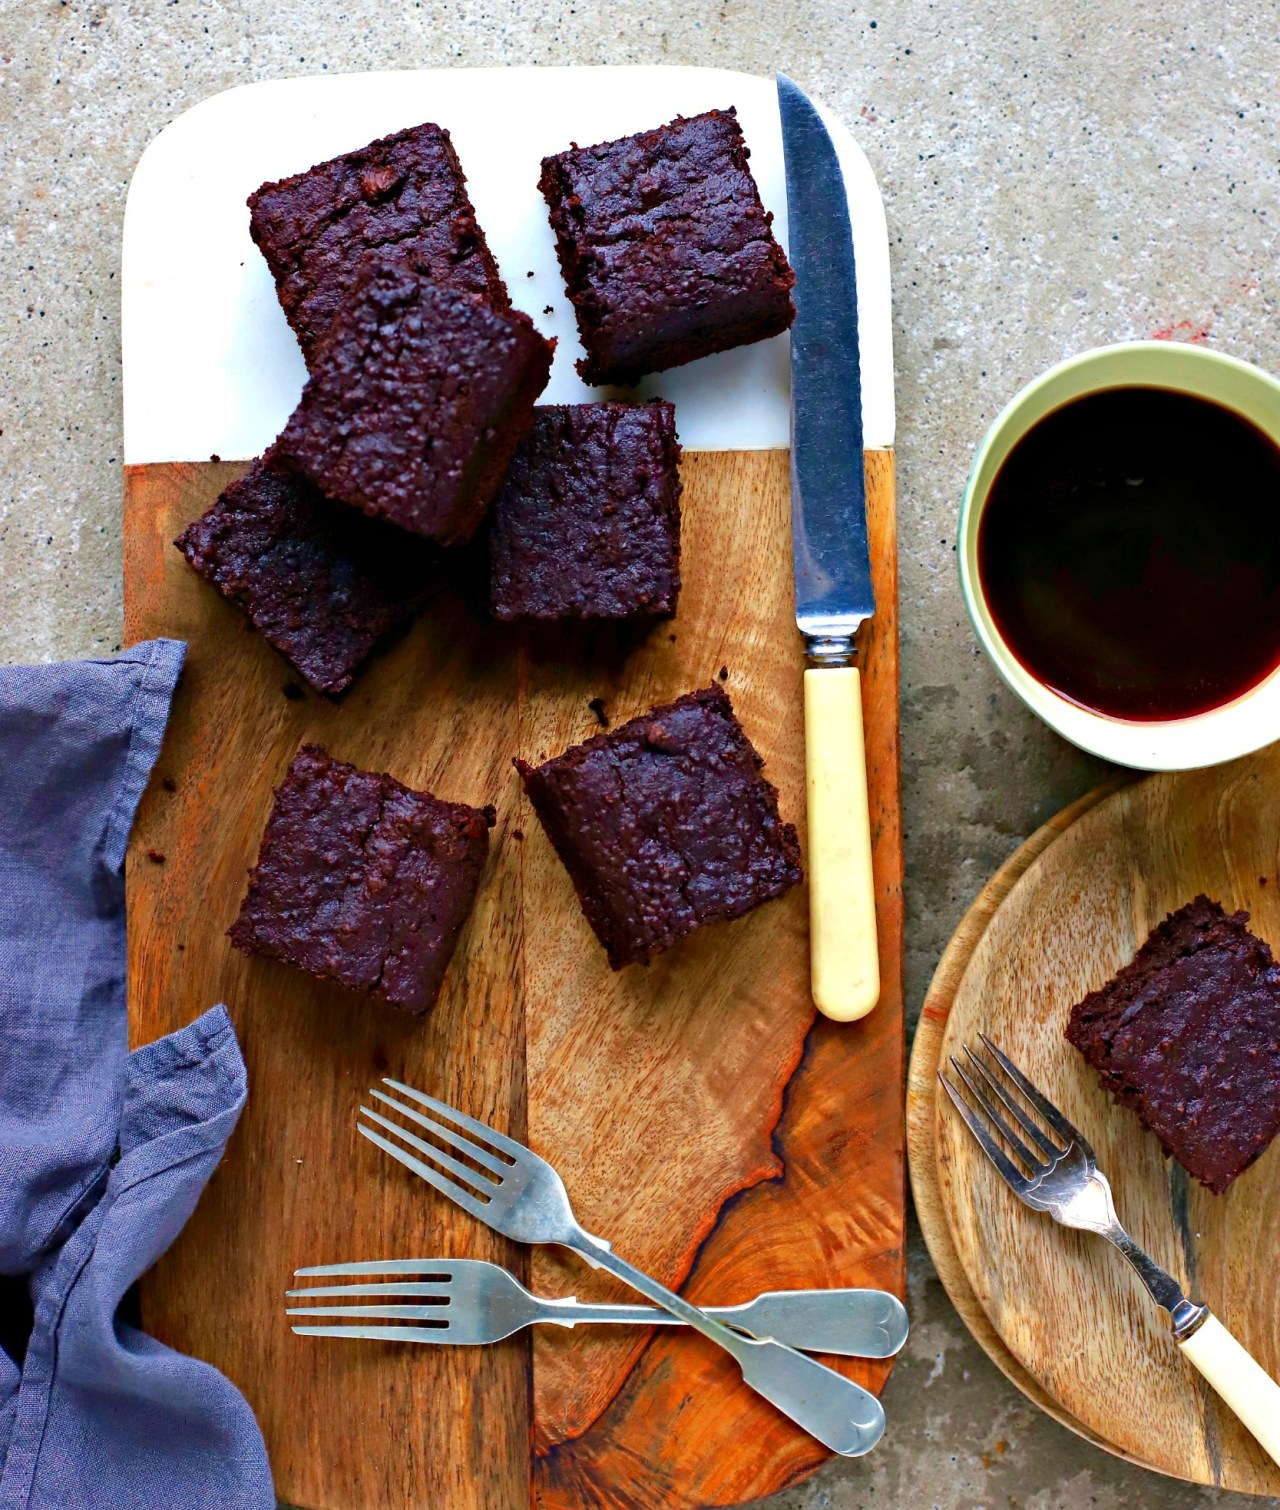 Naturally gluten-free, these irresistible Decadent Chocolate Quinoa Brownies are made with cooked quinoa, cocoa, nut butter and chocolate. Gooey, soft and very more-ish. A lovely snack, or even dessert with ice cream.